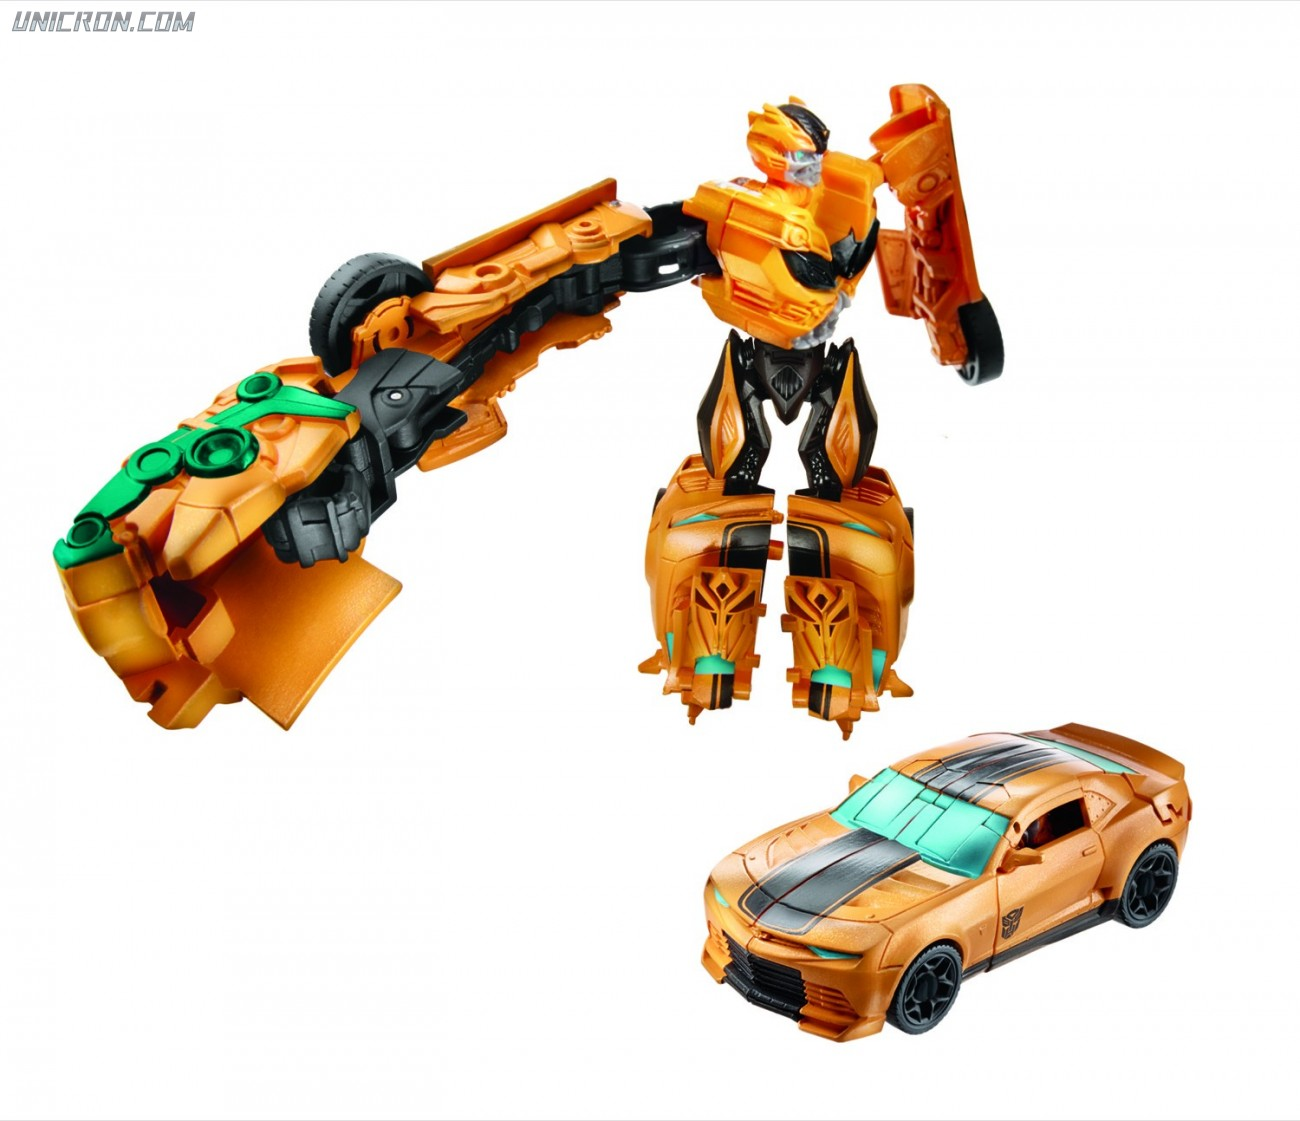 Transformers 4 Age of Extinction Bumblebee - AoE Power Battlers toy